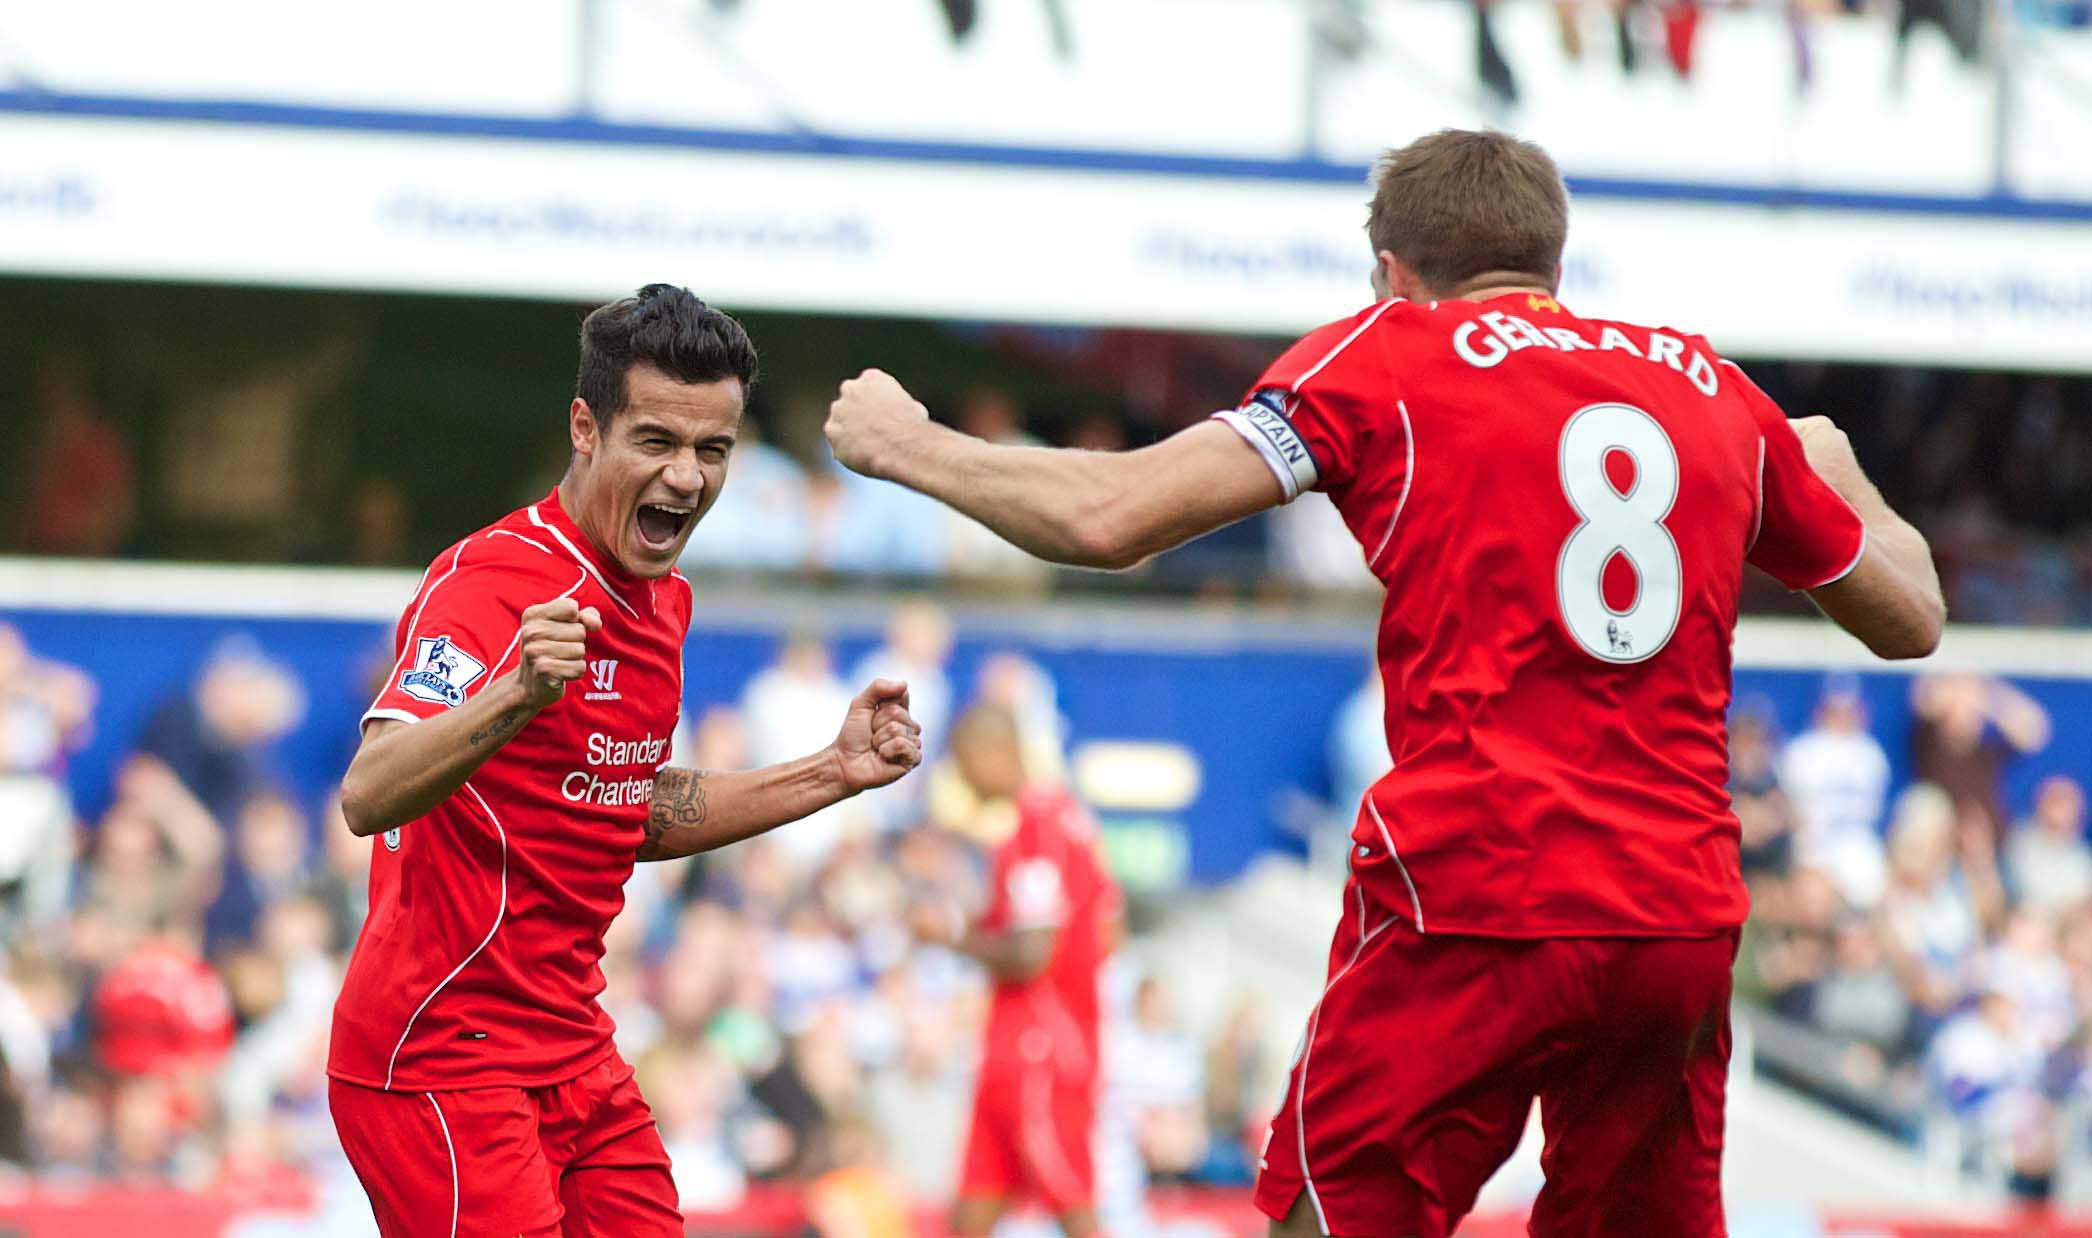 QPR 2 -3 LFC – GETTING AWAY WITH MURDER